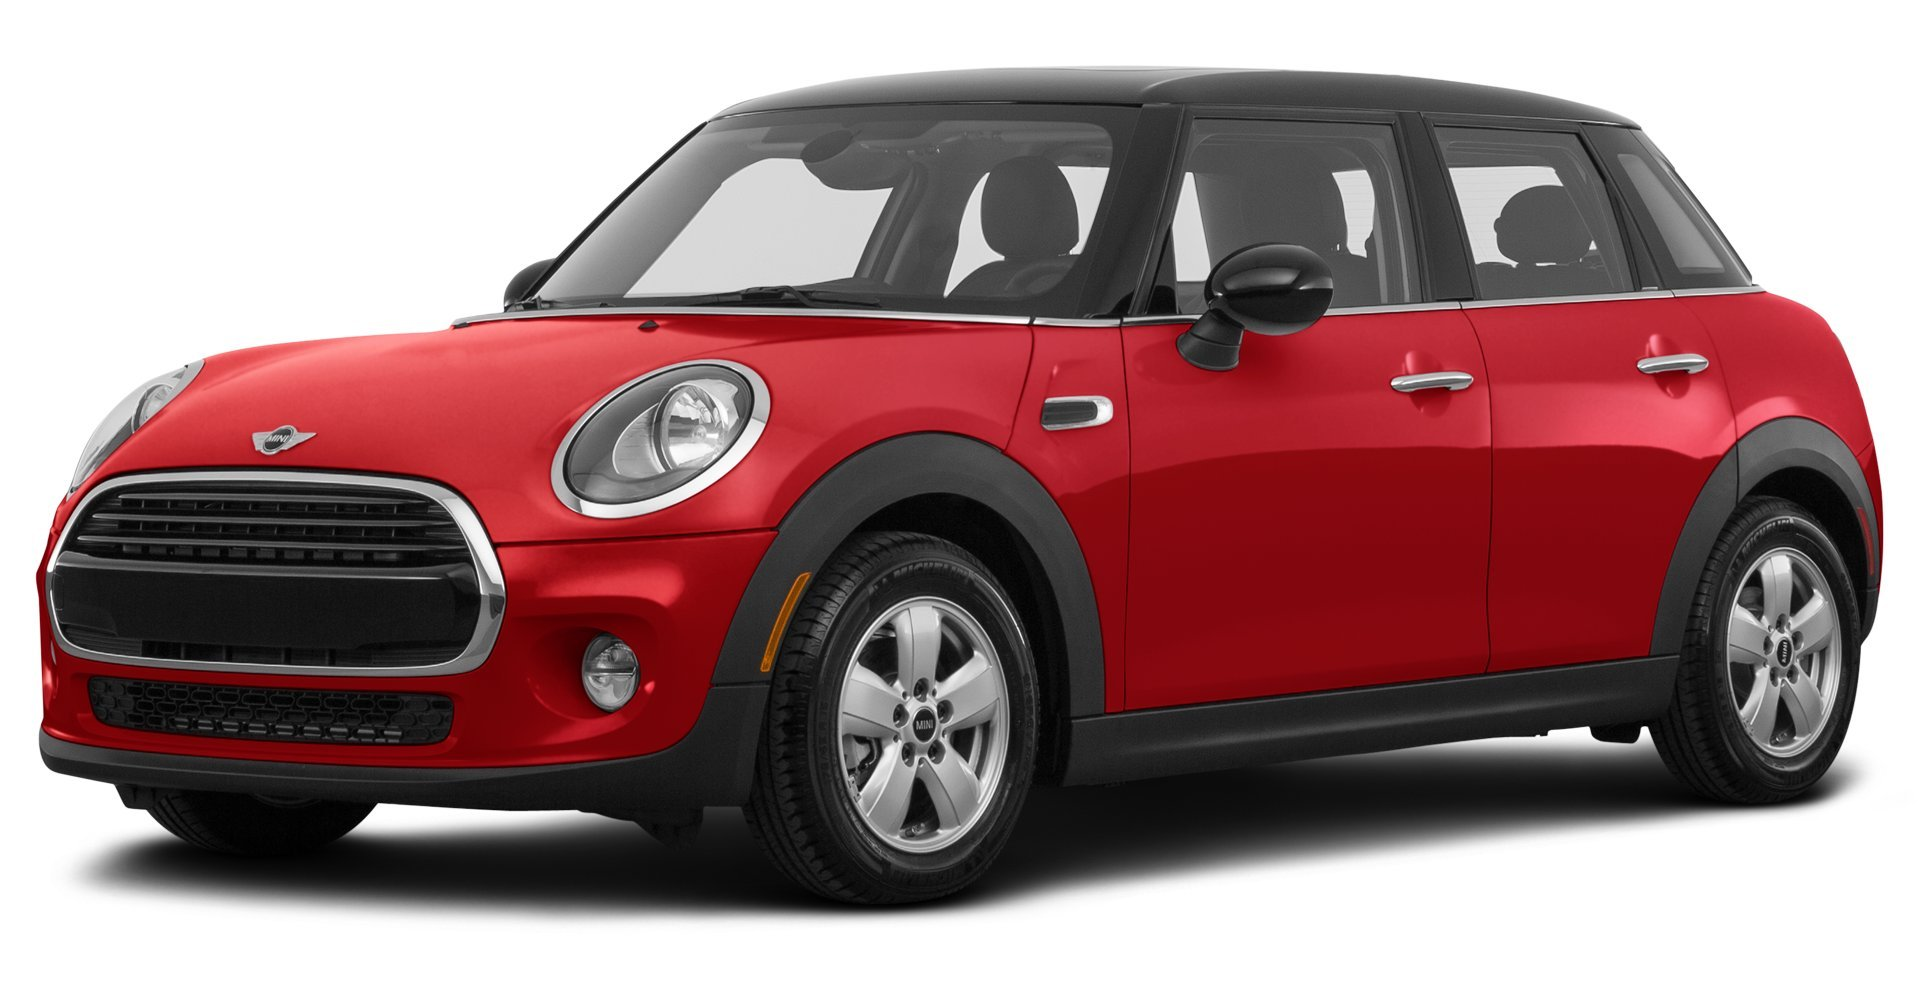 mini cooper engine power with B01cebe40e on 2003 Mini Cooper R50 Dash Fuse Box Diagram also Alpha N BMW 335i additionally 1170369071 moreover Watch besides Bmw B38 3 Cylinder Gasoline Engine Benchmarking Study.